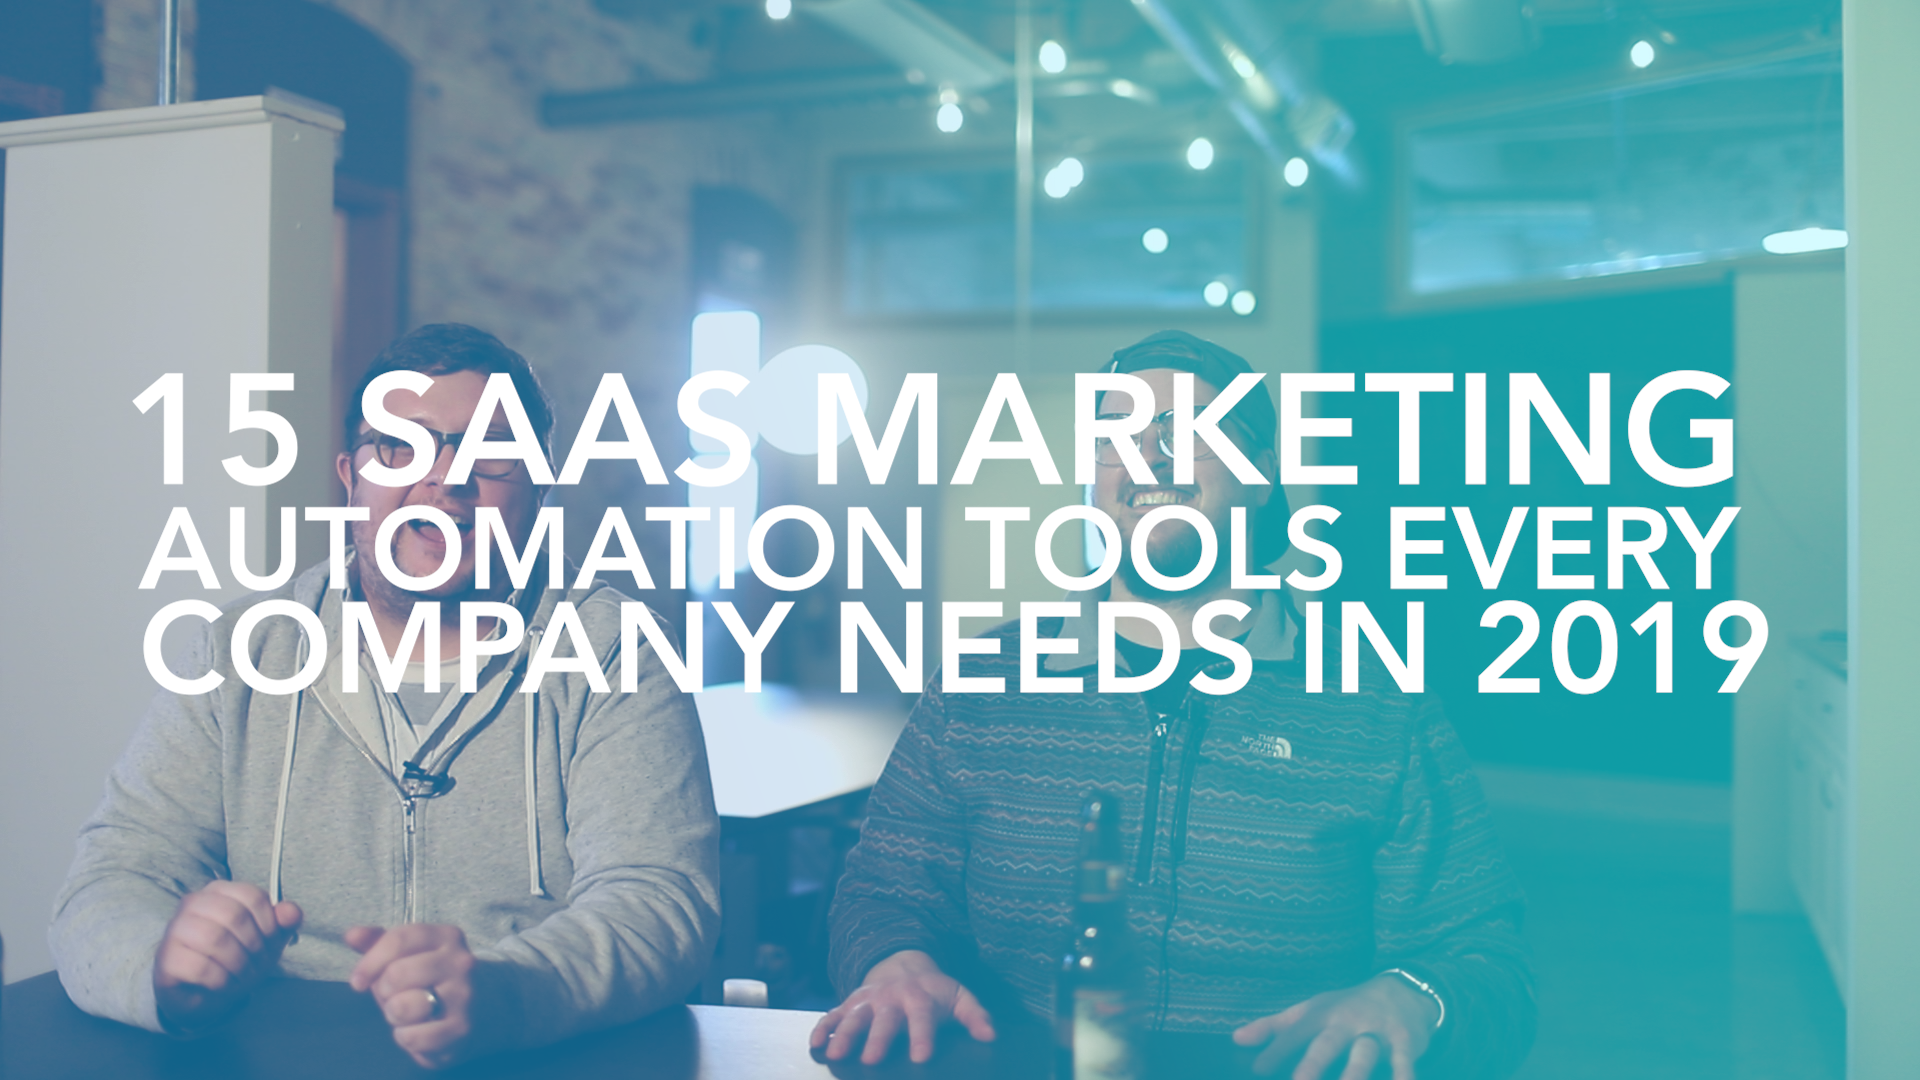 15 SAAS MARKETING AUTOMATION TOOLS EVERY COMPANY NEEDS IN 2019 thumbnail-1